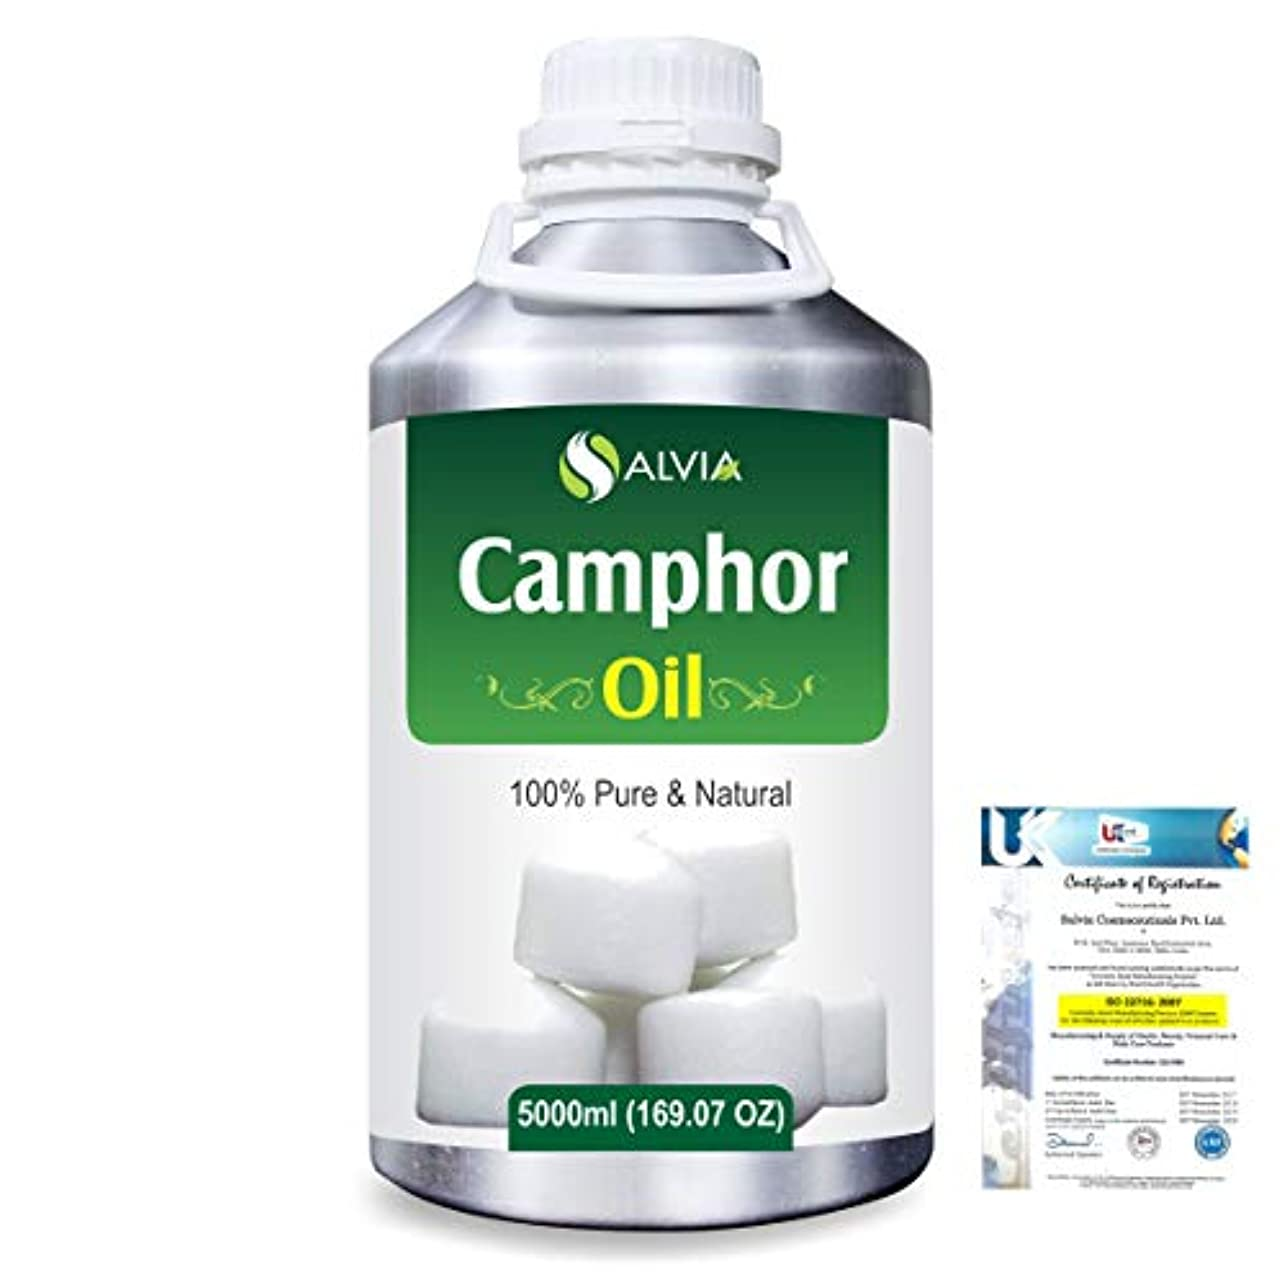 茎本土焦がすCamphor (Cinnamonutn camphora) 100% Natural Pure Essential Oil 5000ml/169fl.oz.